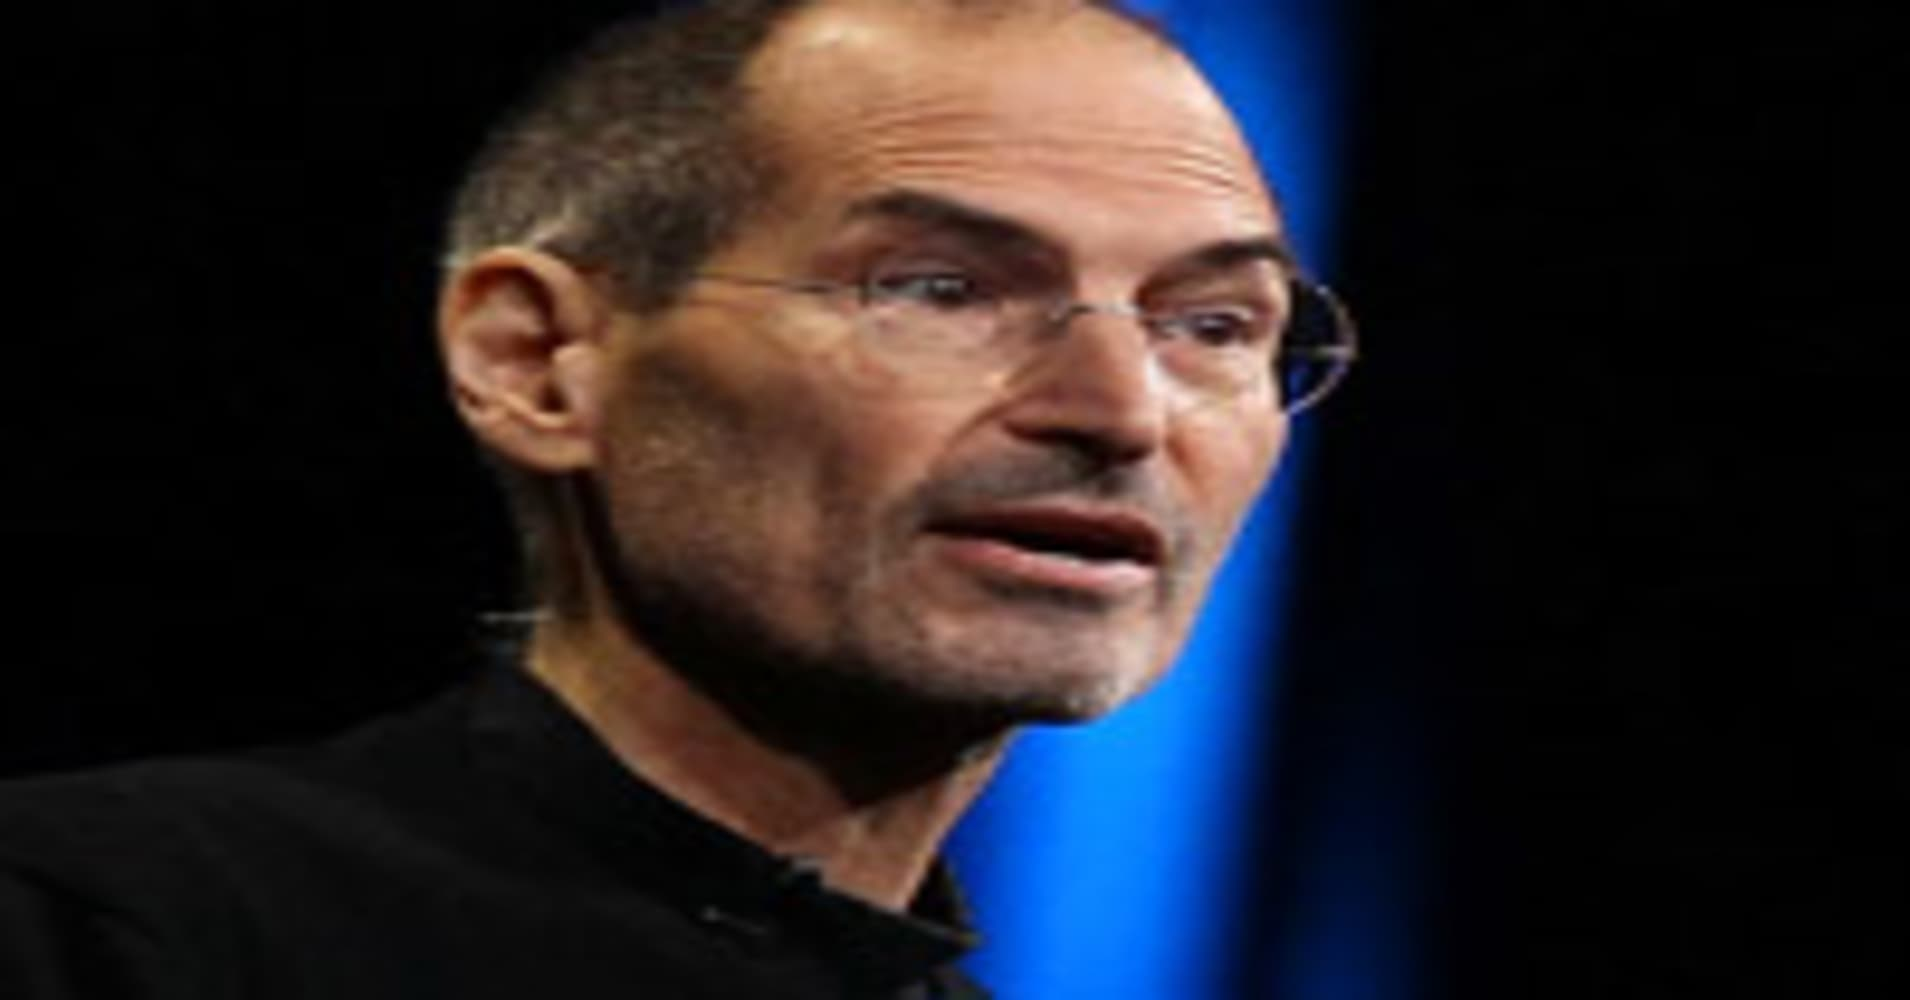 Patti Jobs Steve Jobs Sister Steve Jobs  Apple s Visionary